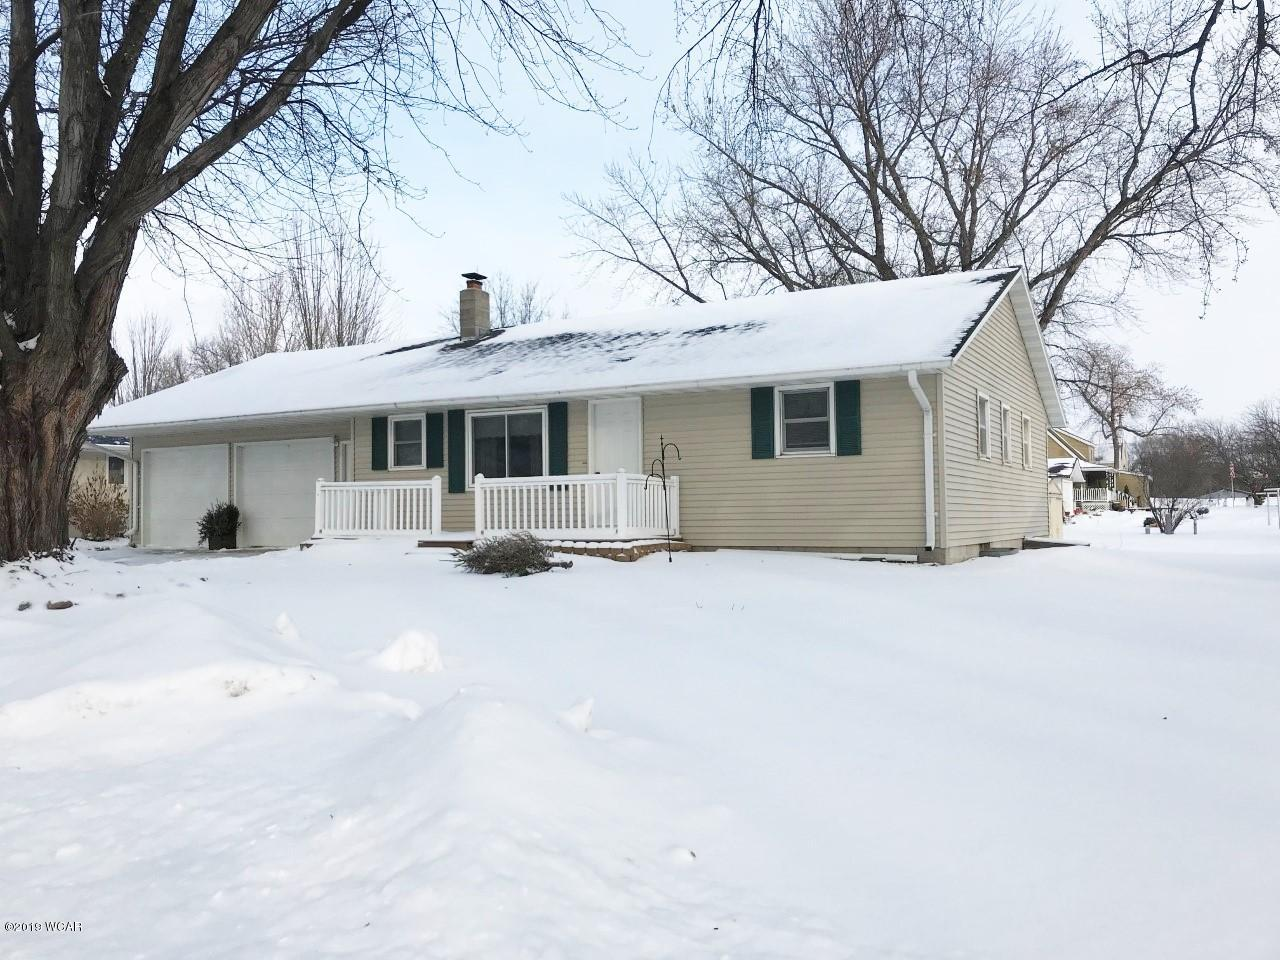 156 6th Street,Kandiyohi,3 Bedrooms Bedrooms,2 BathroomsBathrooms,Single Family,6th Street,6033336